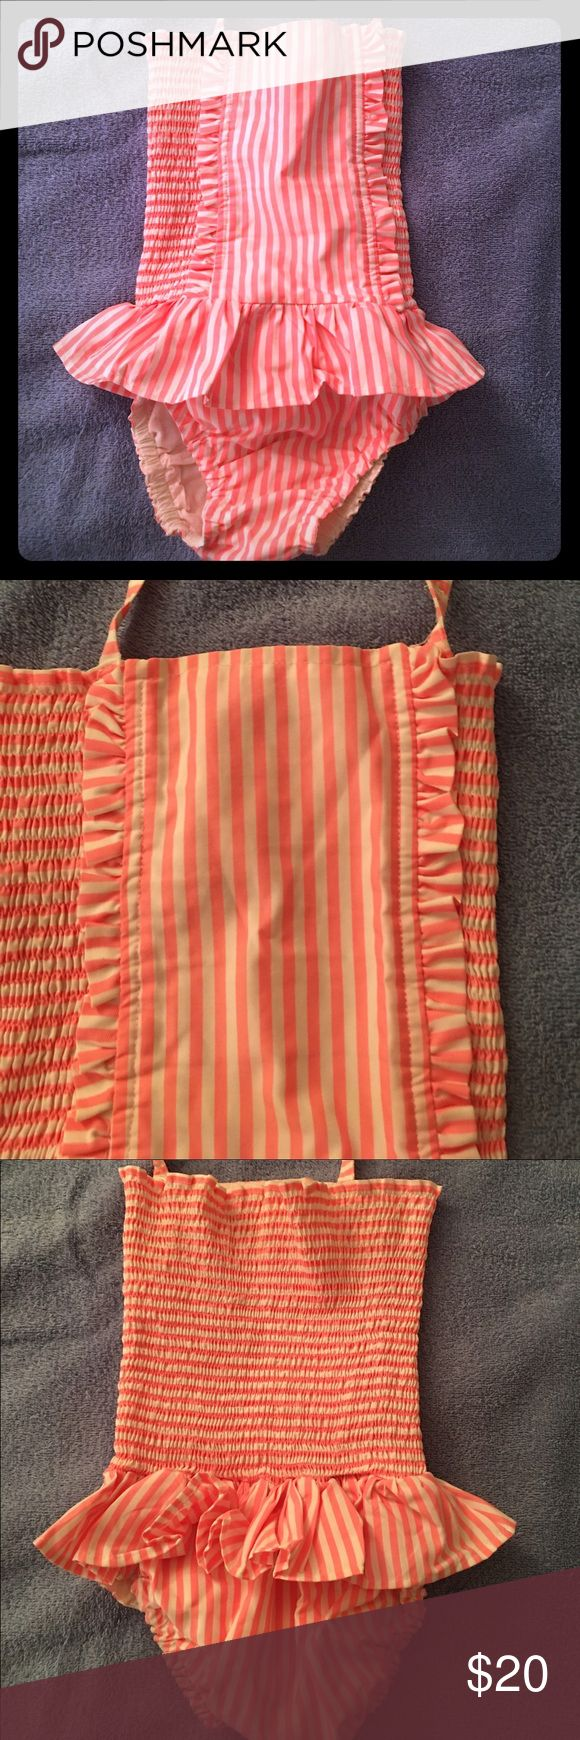 Rachel Riley Girl's Swimsuit, 3T. Rachel Riley Girl's Swimsuit, 3T.  Adjustable neck strap.  EUC.  Smoke free/Pet free home. Rachel Riley Swim One Piece